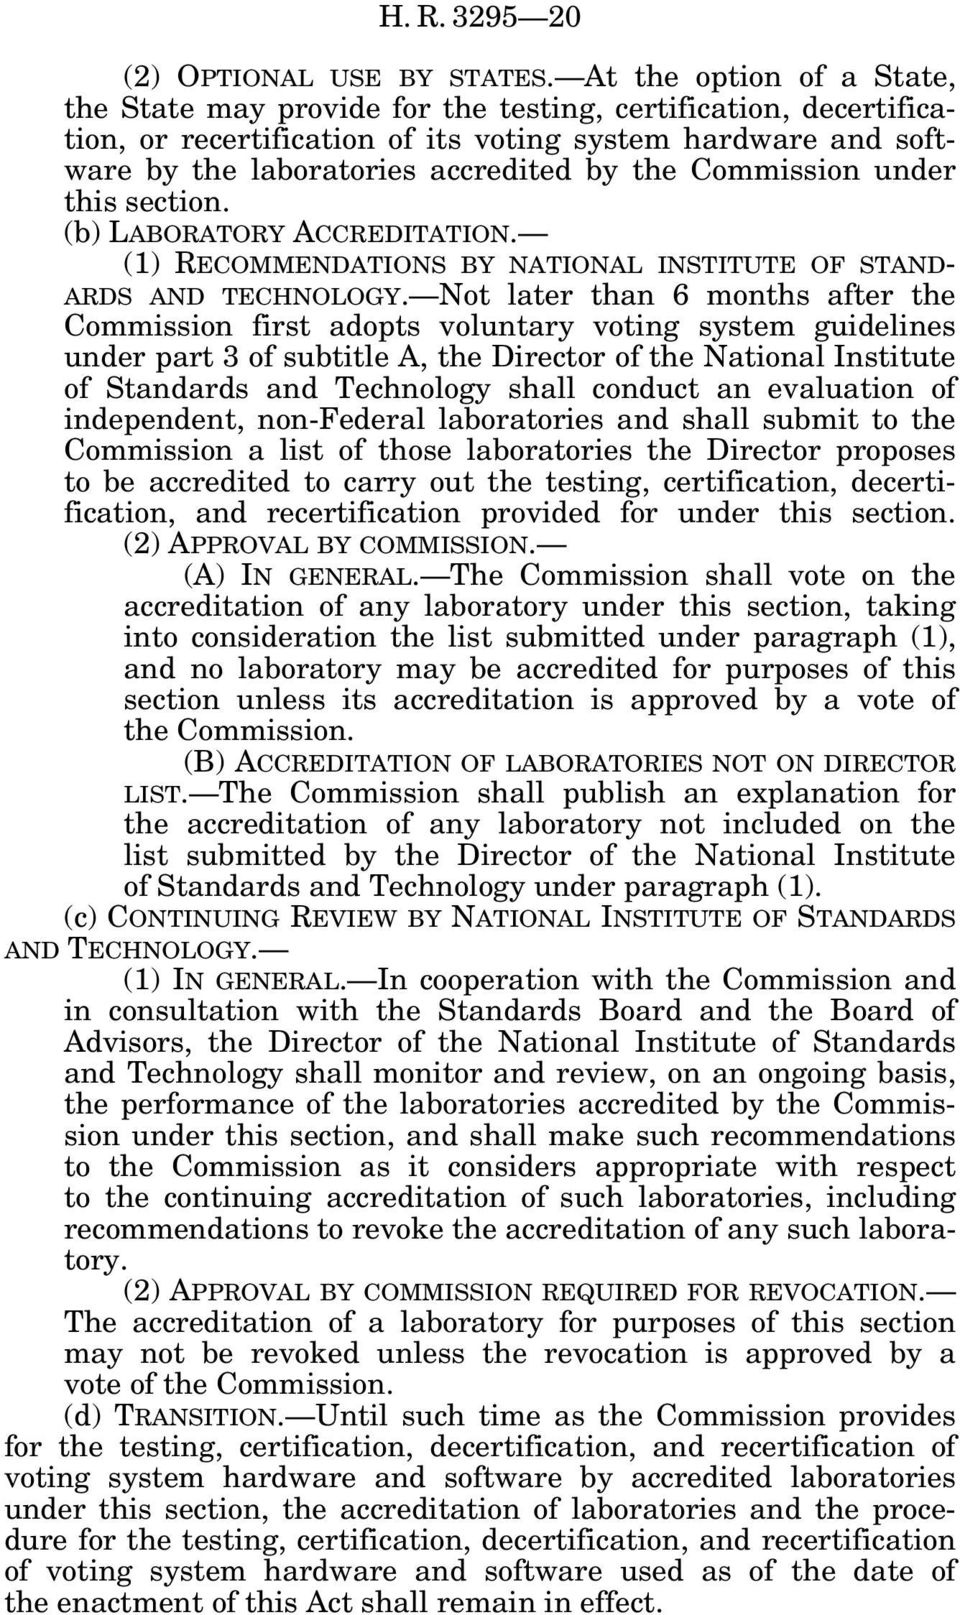 Commission under this section. (b) LABORATORY ACCREDITATION. (1) RECOMMENDATIONS BY NATIONAL INSTITUTE OF STAND- ARDS AND TECHNOLOGY.